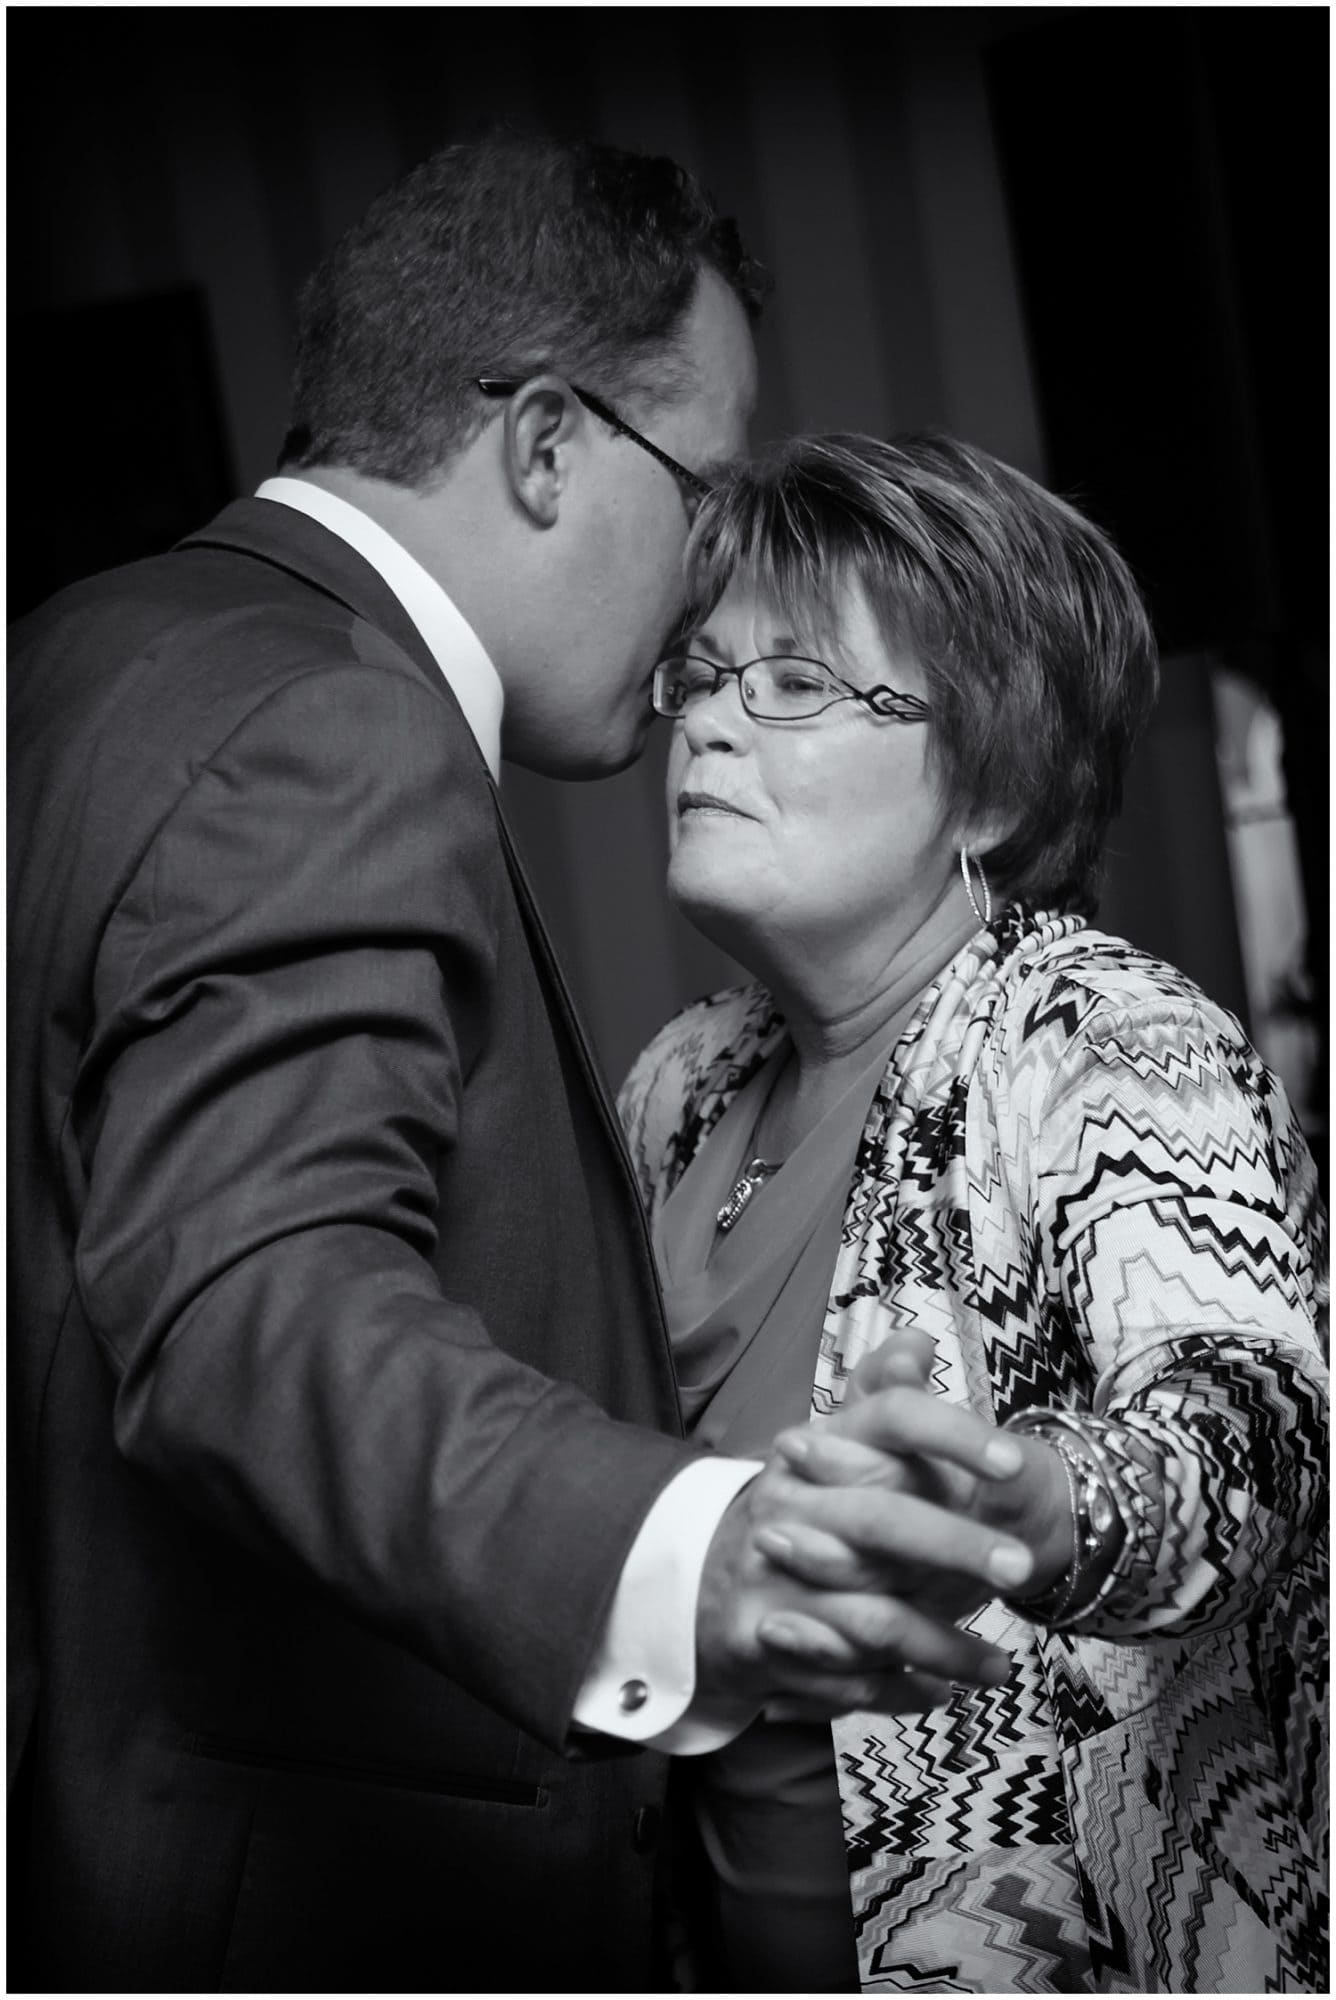 The groom dances with his mother during the parent dances at his wedding reception in the Ashburn Golf Club in Halifax.